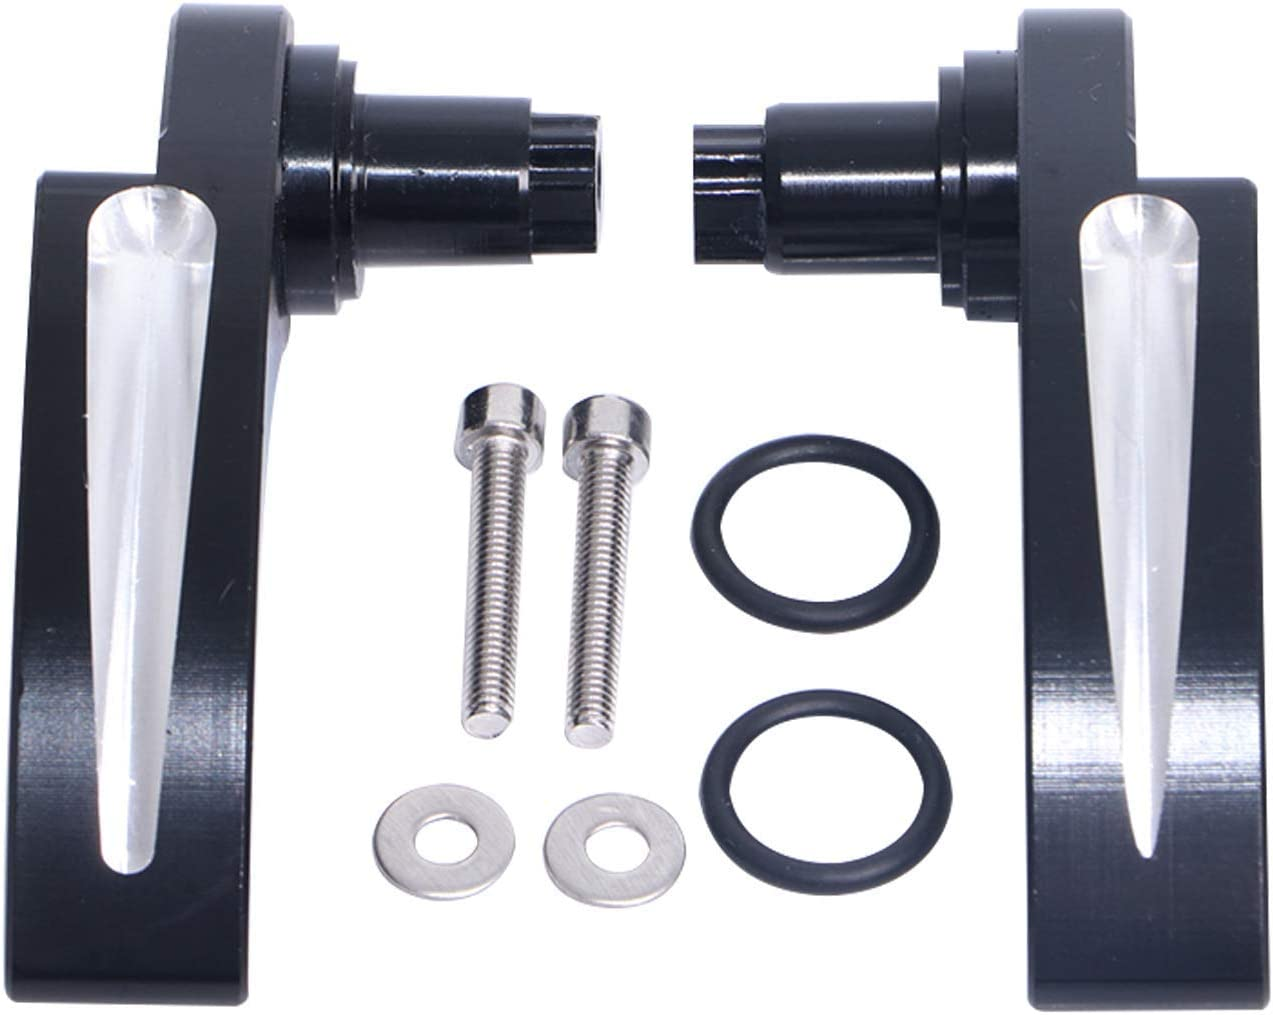 Edge Cutting Saddlebag Latch Cover and Lid Lifter Kit Compatible with 2014-2018 Harley Touring Road King Street Electra Glide